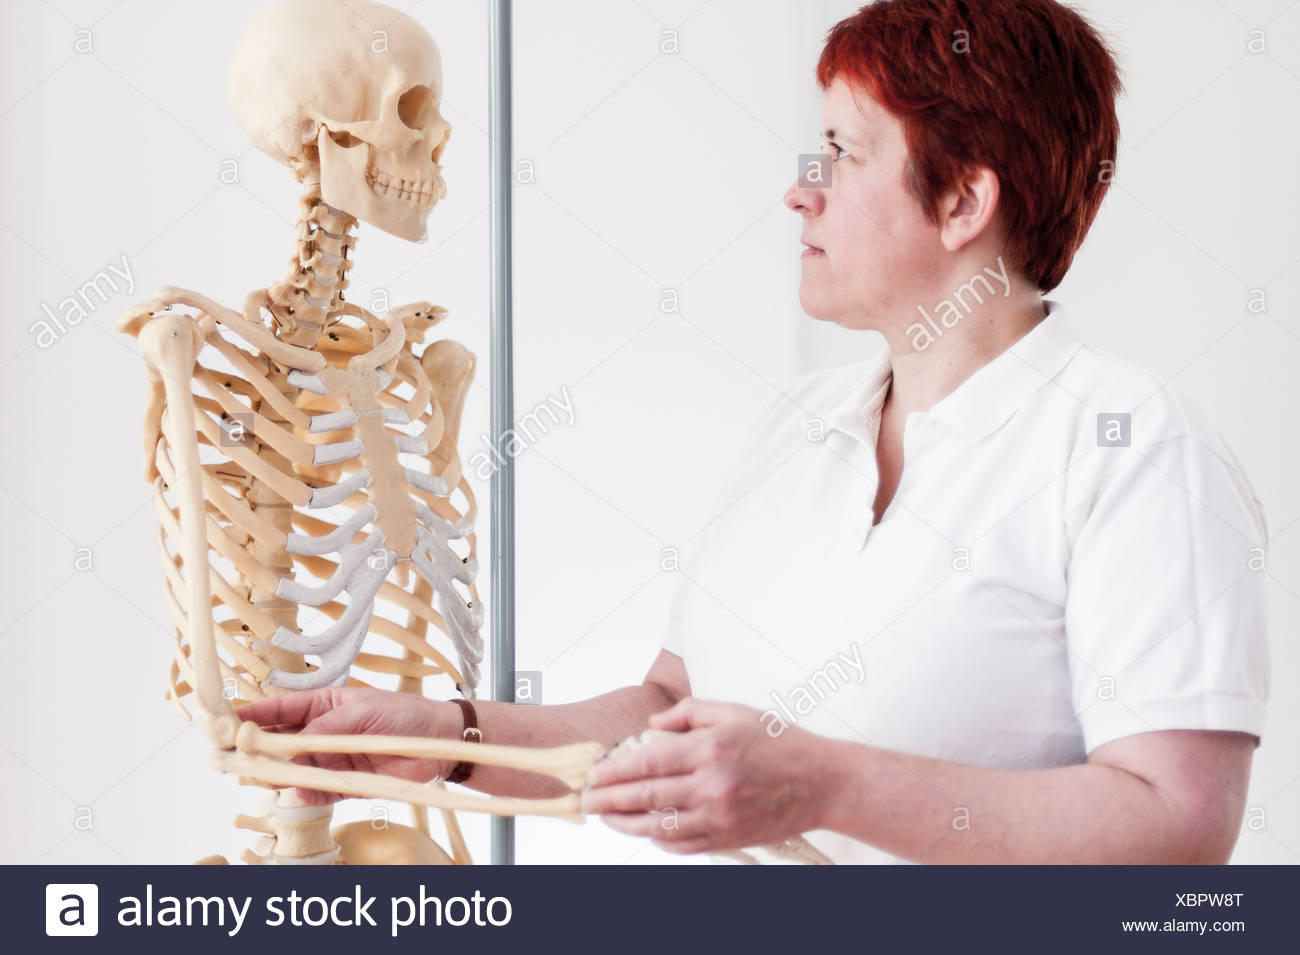 Woman holding arm of model skeleton - Stock Image